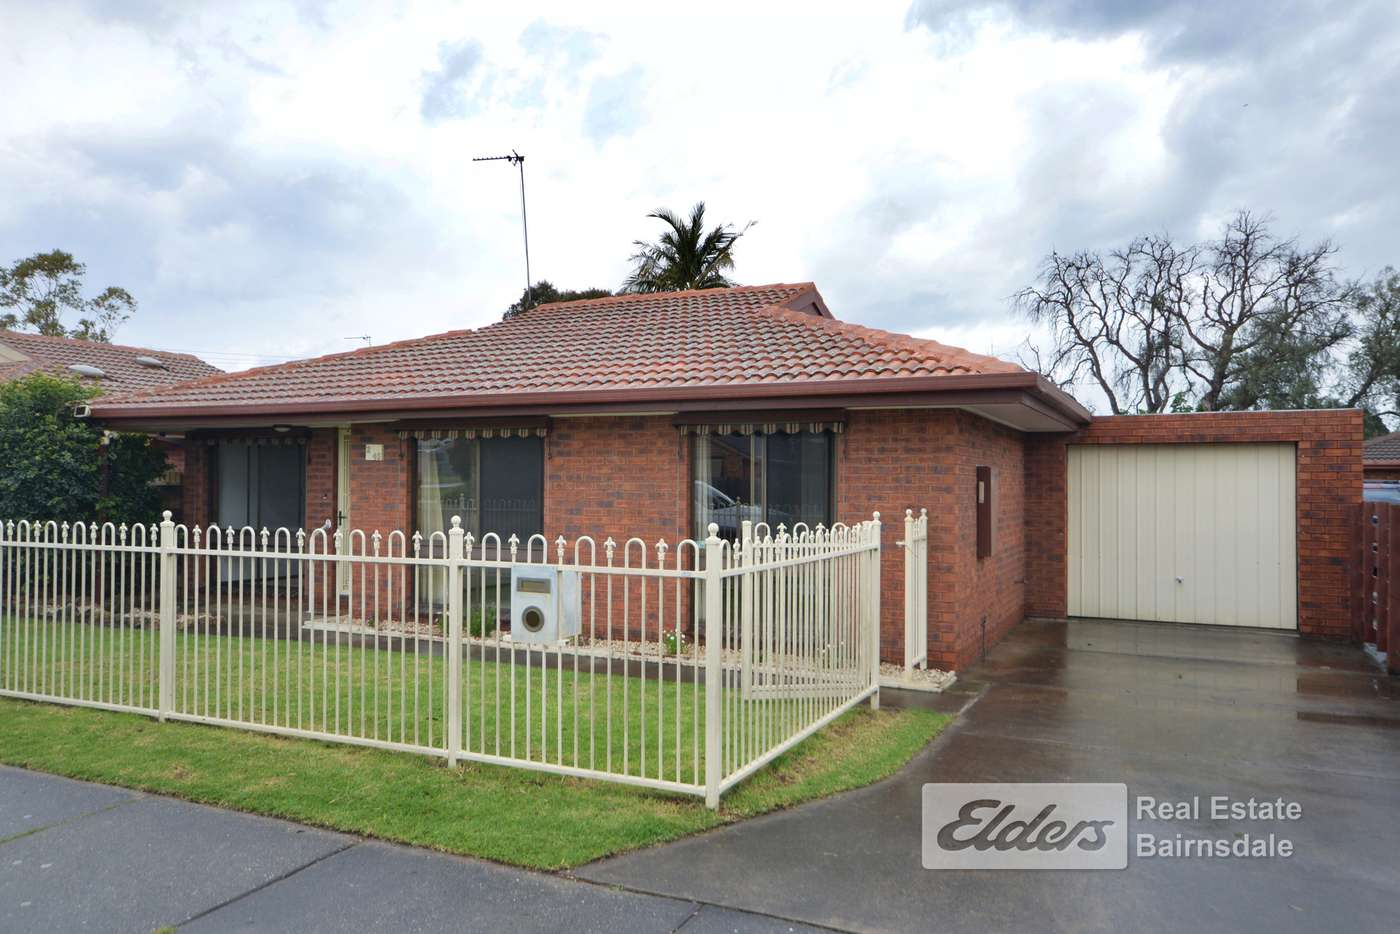 Main view of Homely house listing, 2/45 Goold Street, Bairnsdale VIC 3875